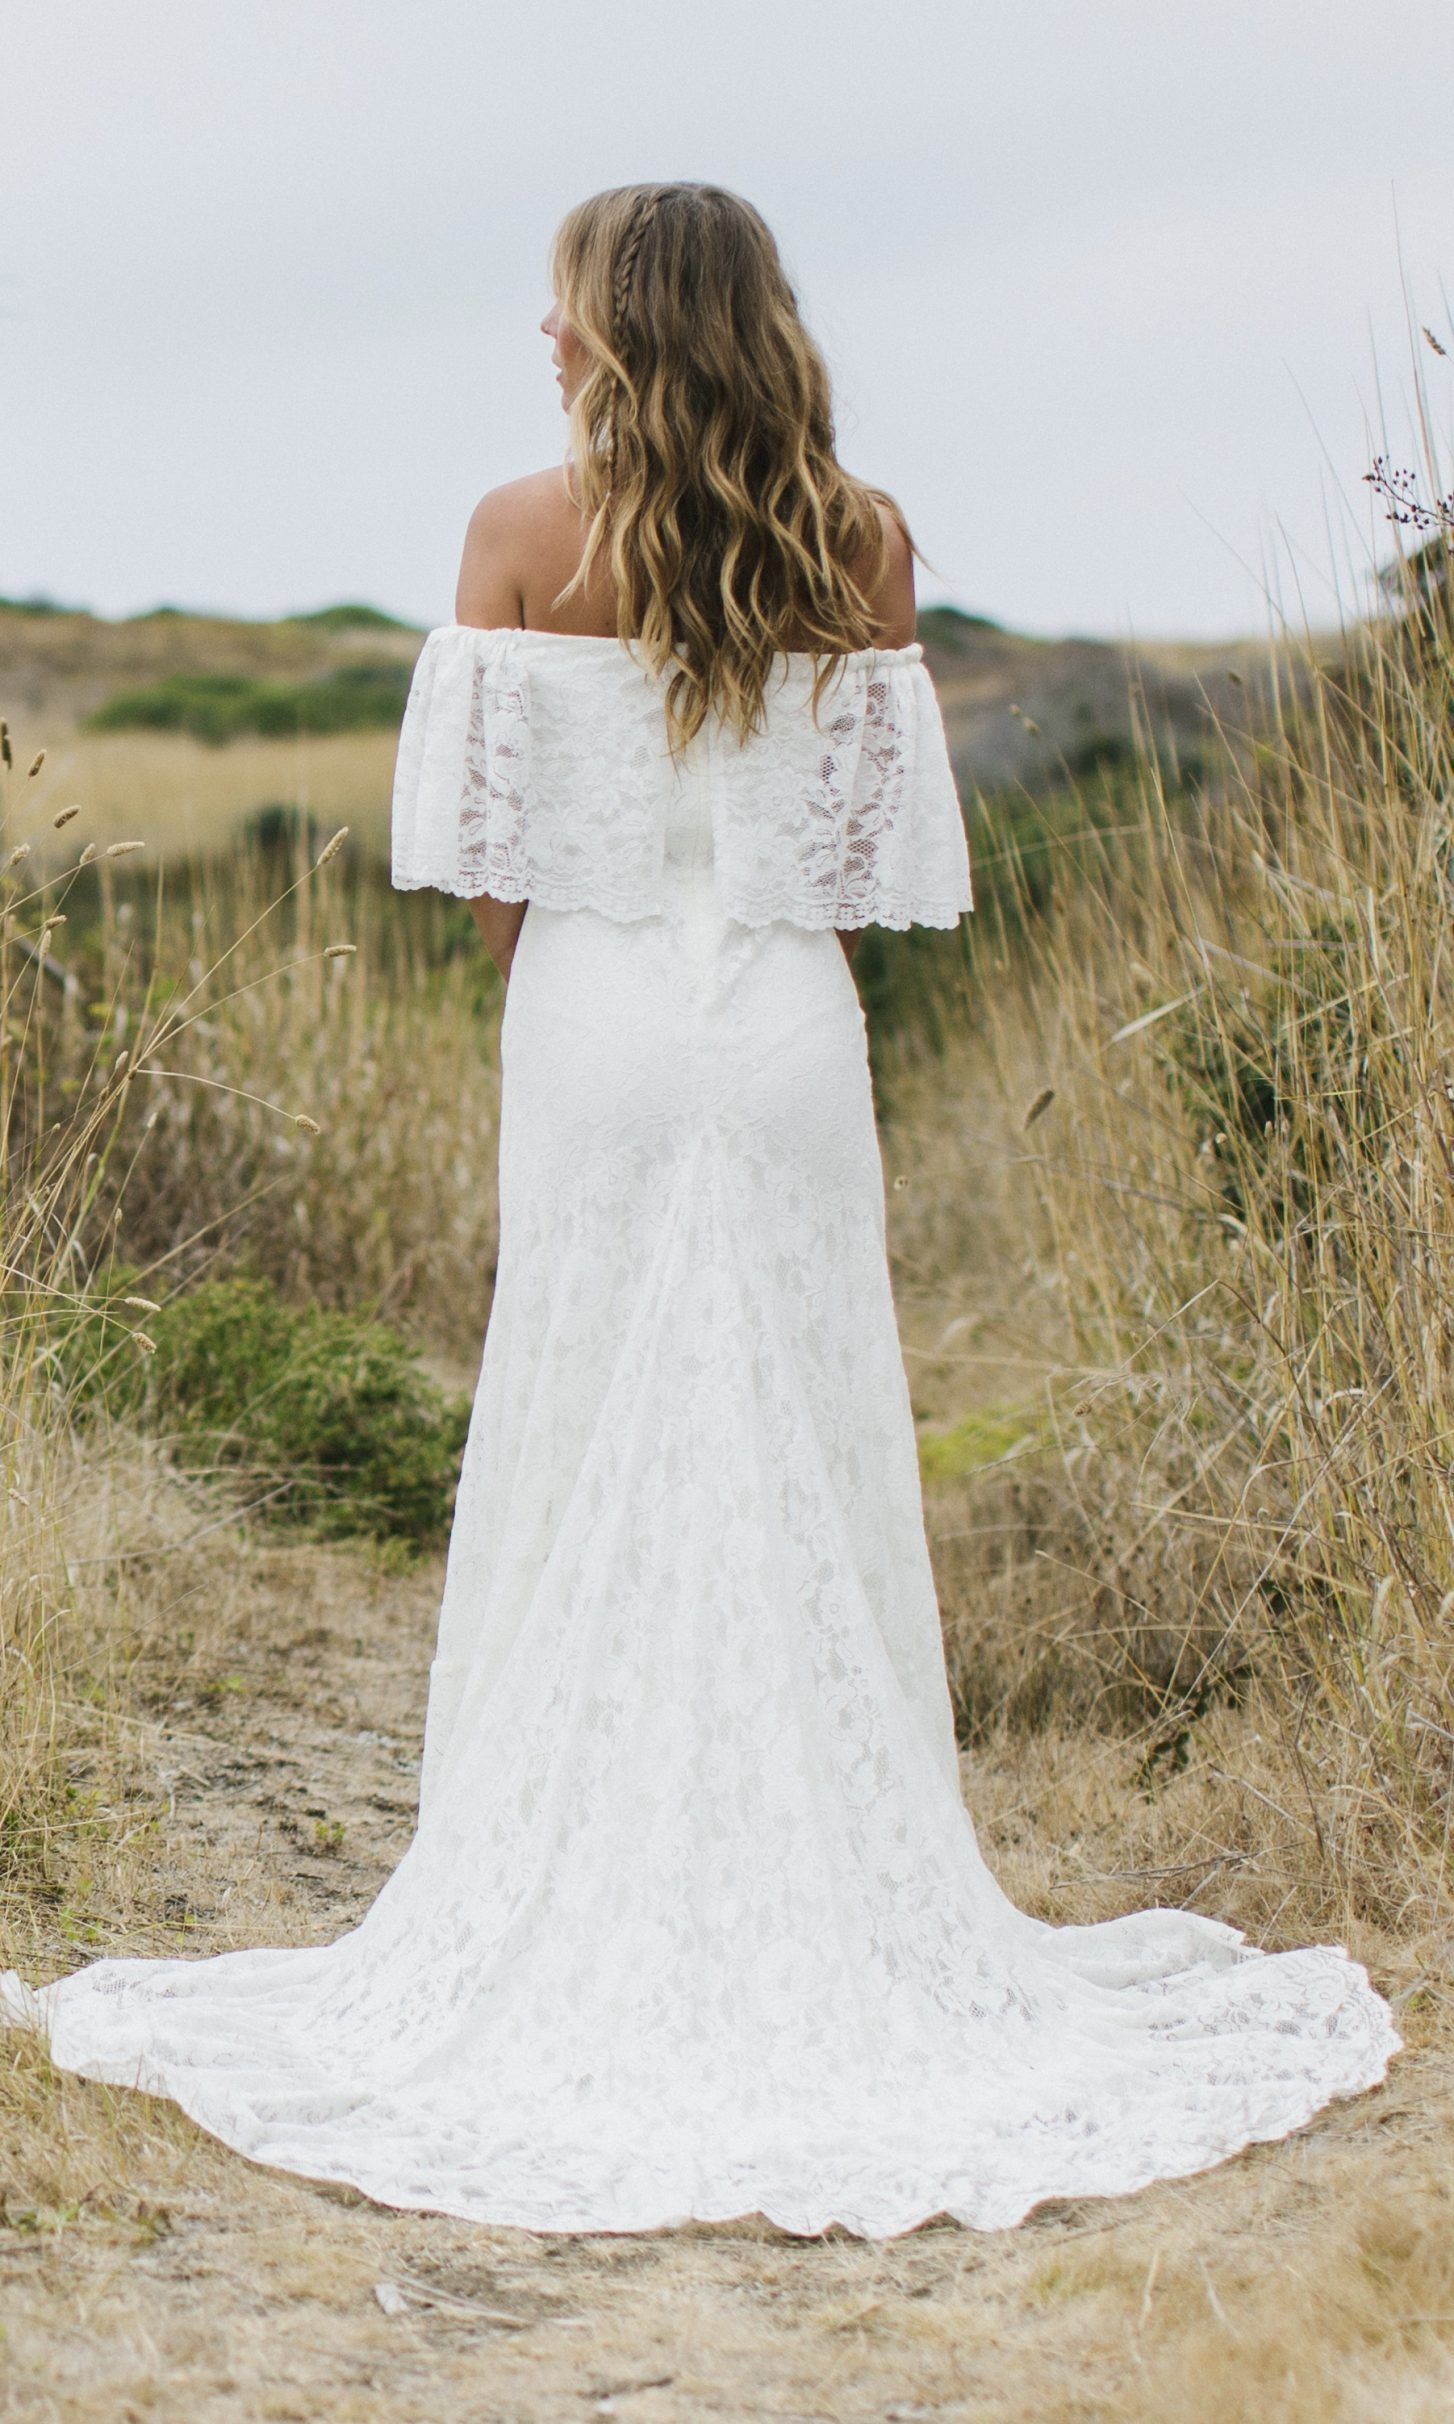 Lace Vintage Inspired Wedding Dress & Gown | White Bohemian & Formal ...